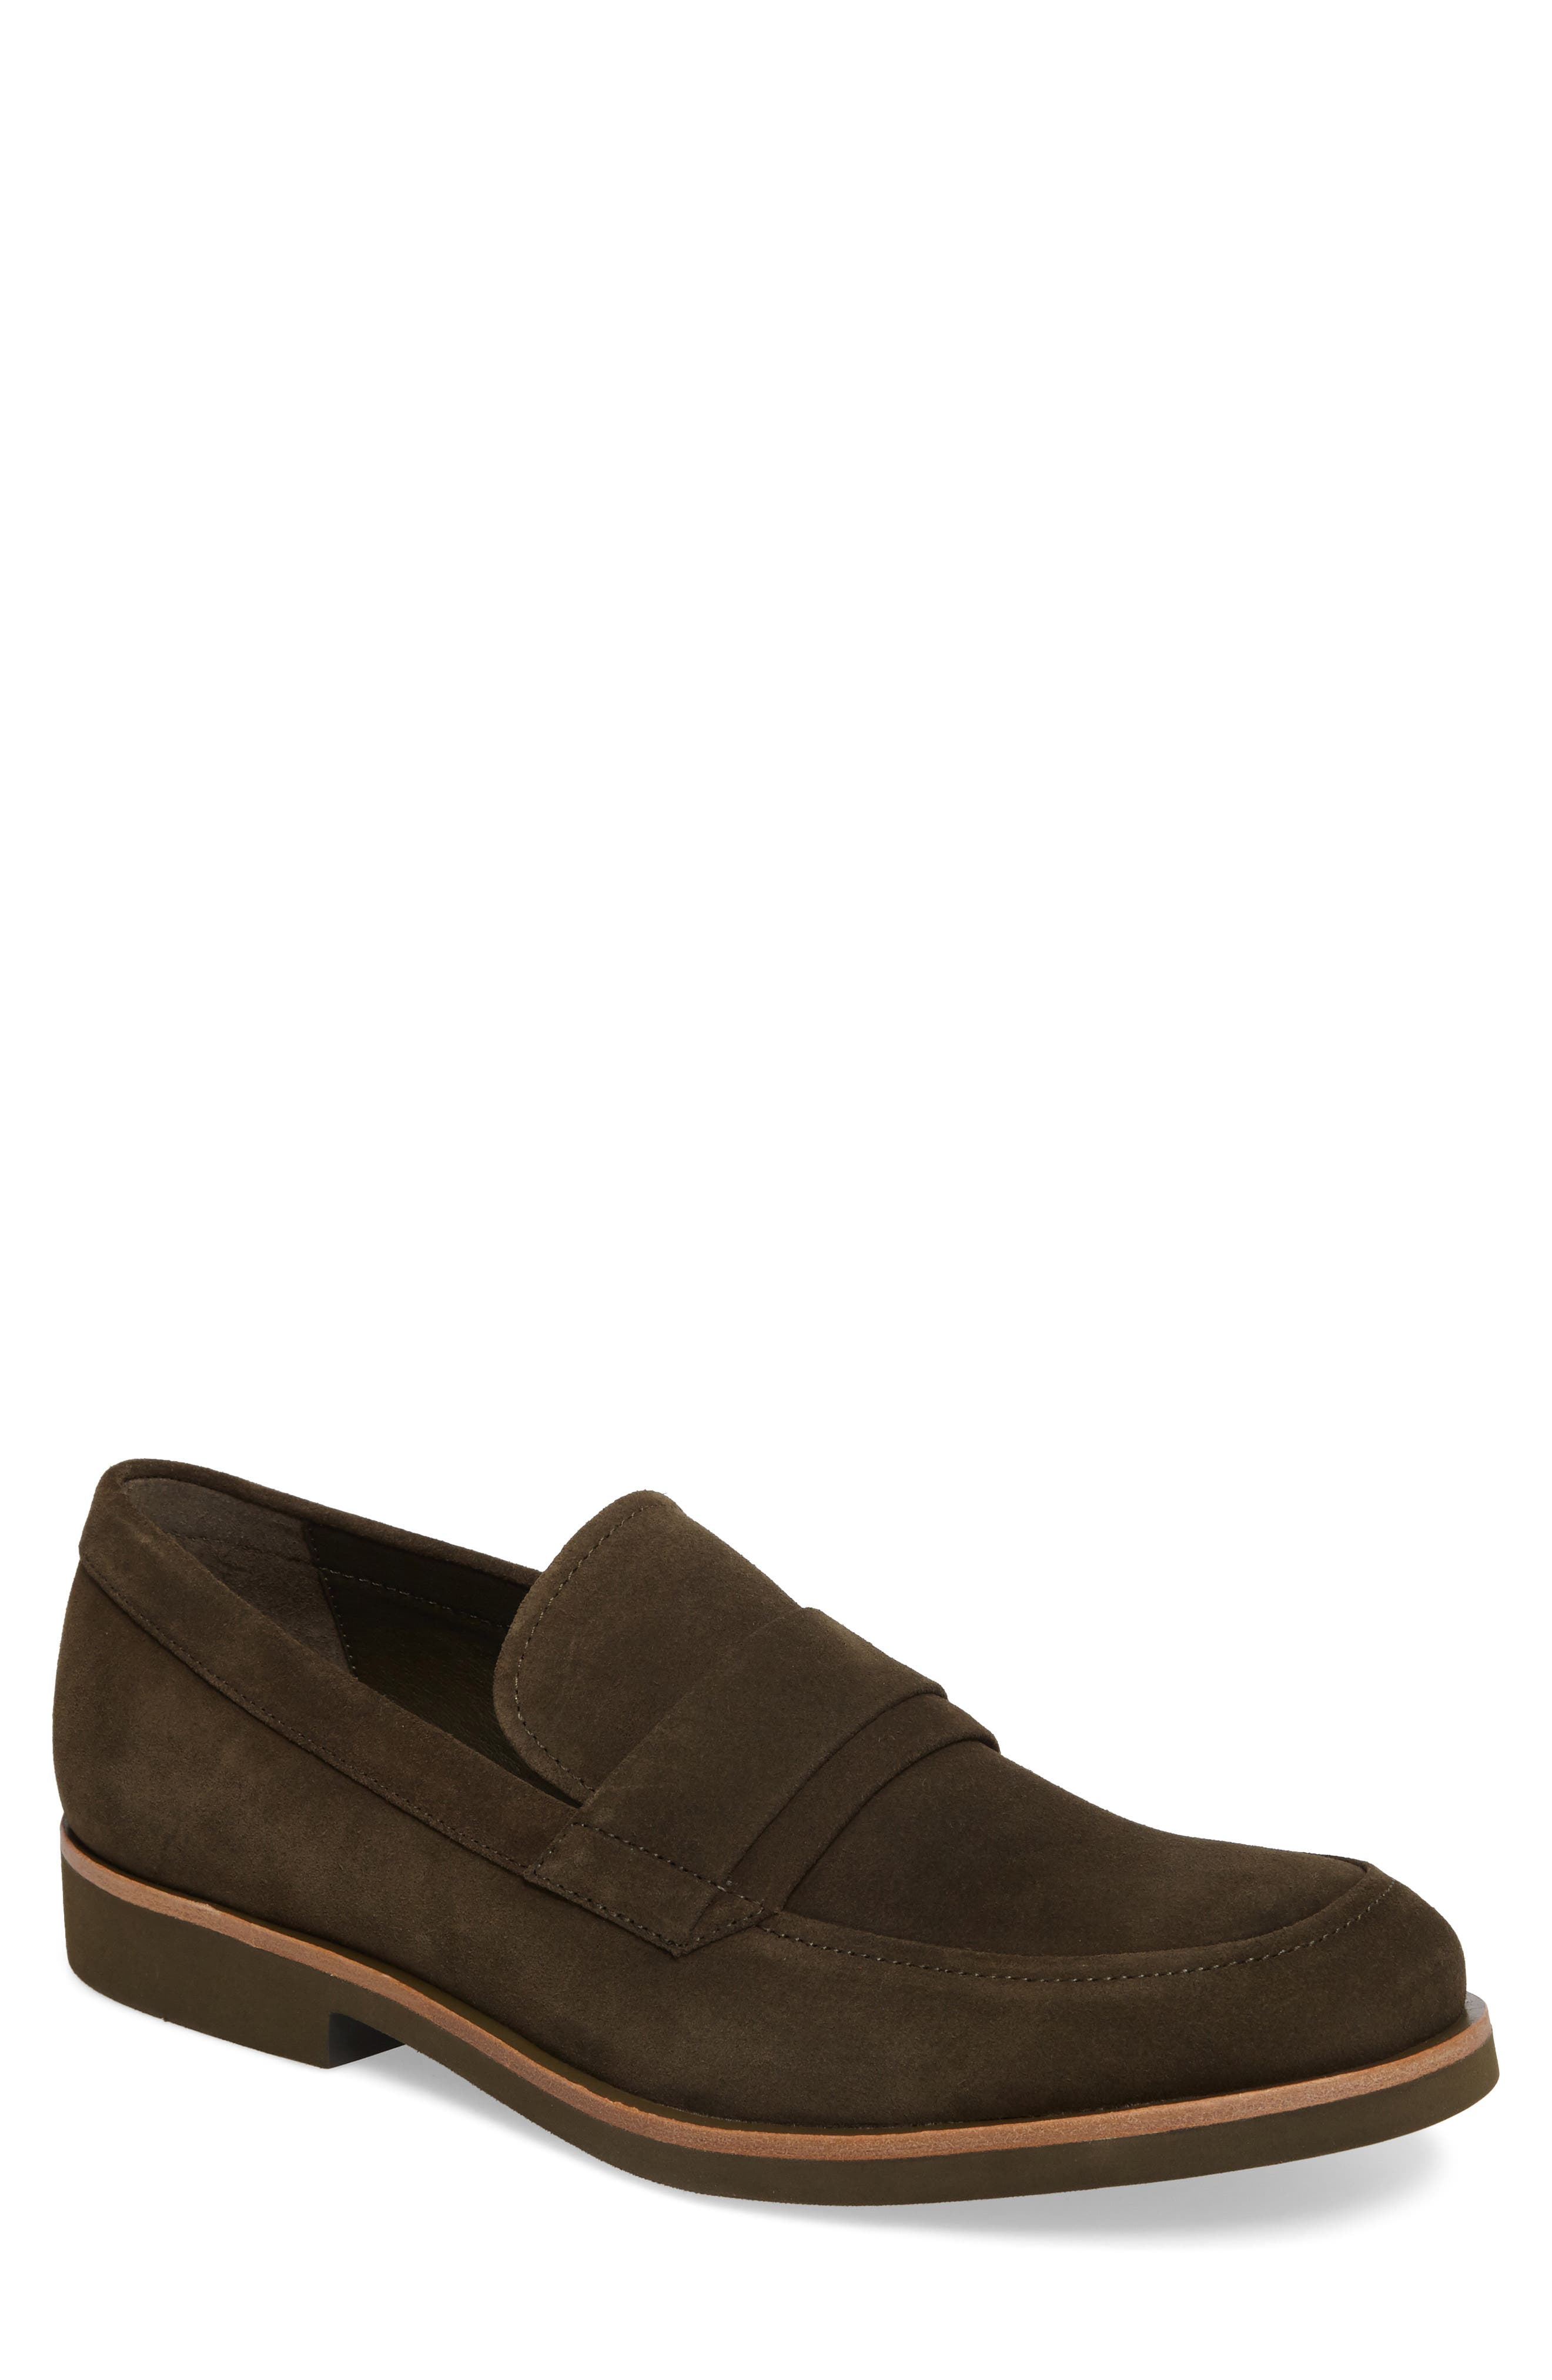 Forbes Loafer,                             Main thumbnail 1, color,                             Olive Suede